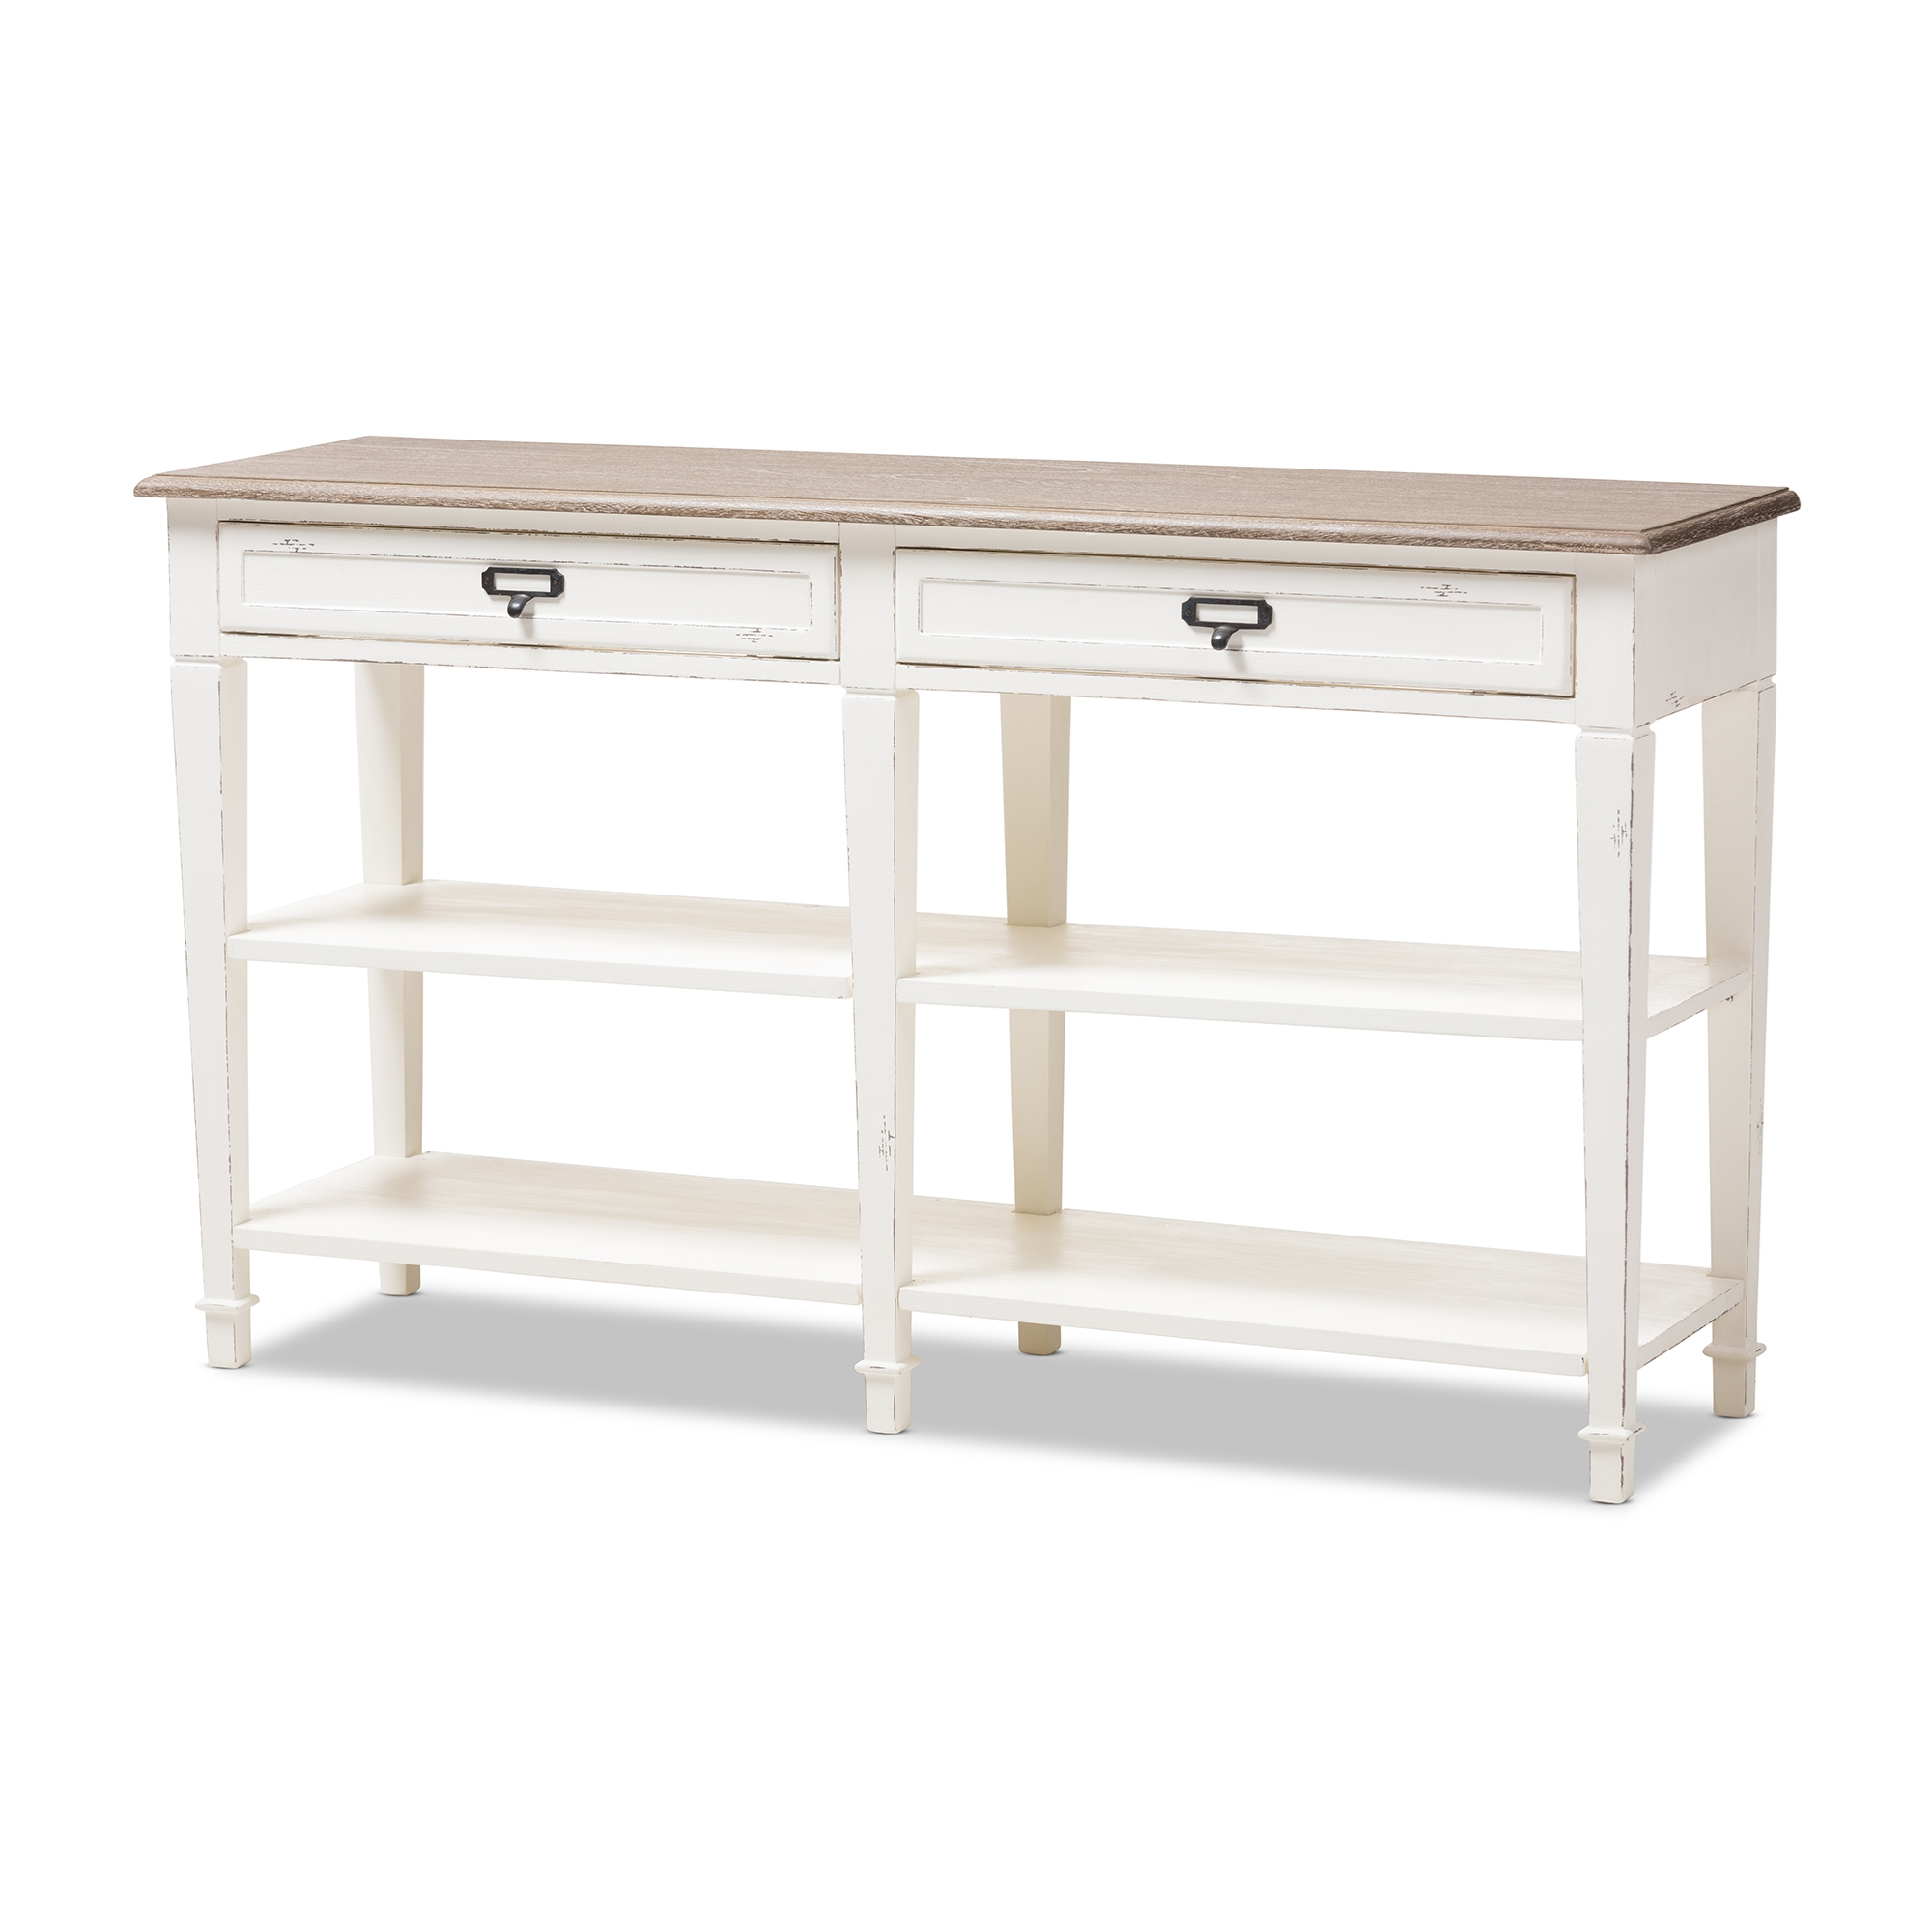 distressed white washed furniture. Baxton Studio Dauphine Provincial Style Weathered Oak And White Wash Distressed Finish Wood Console Table Washed Furniture F